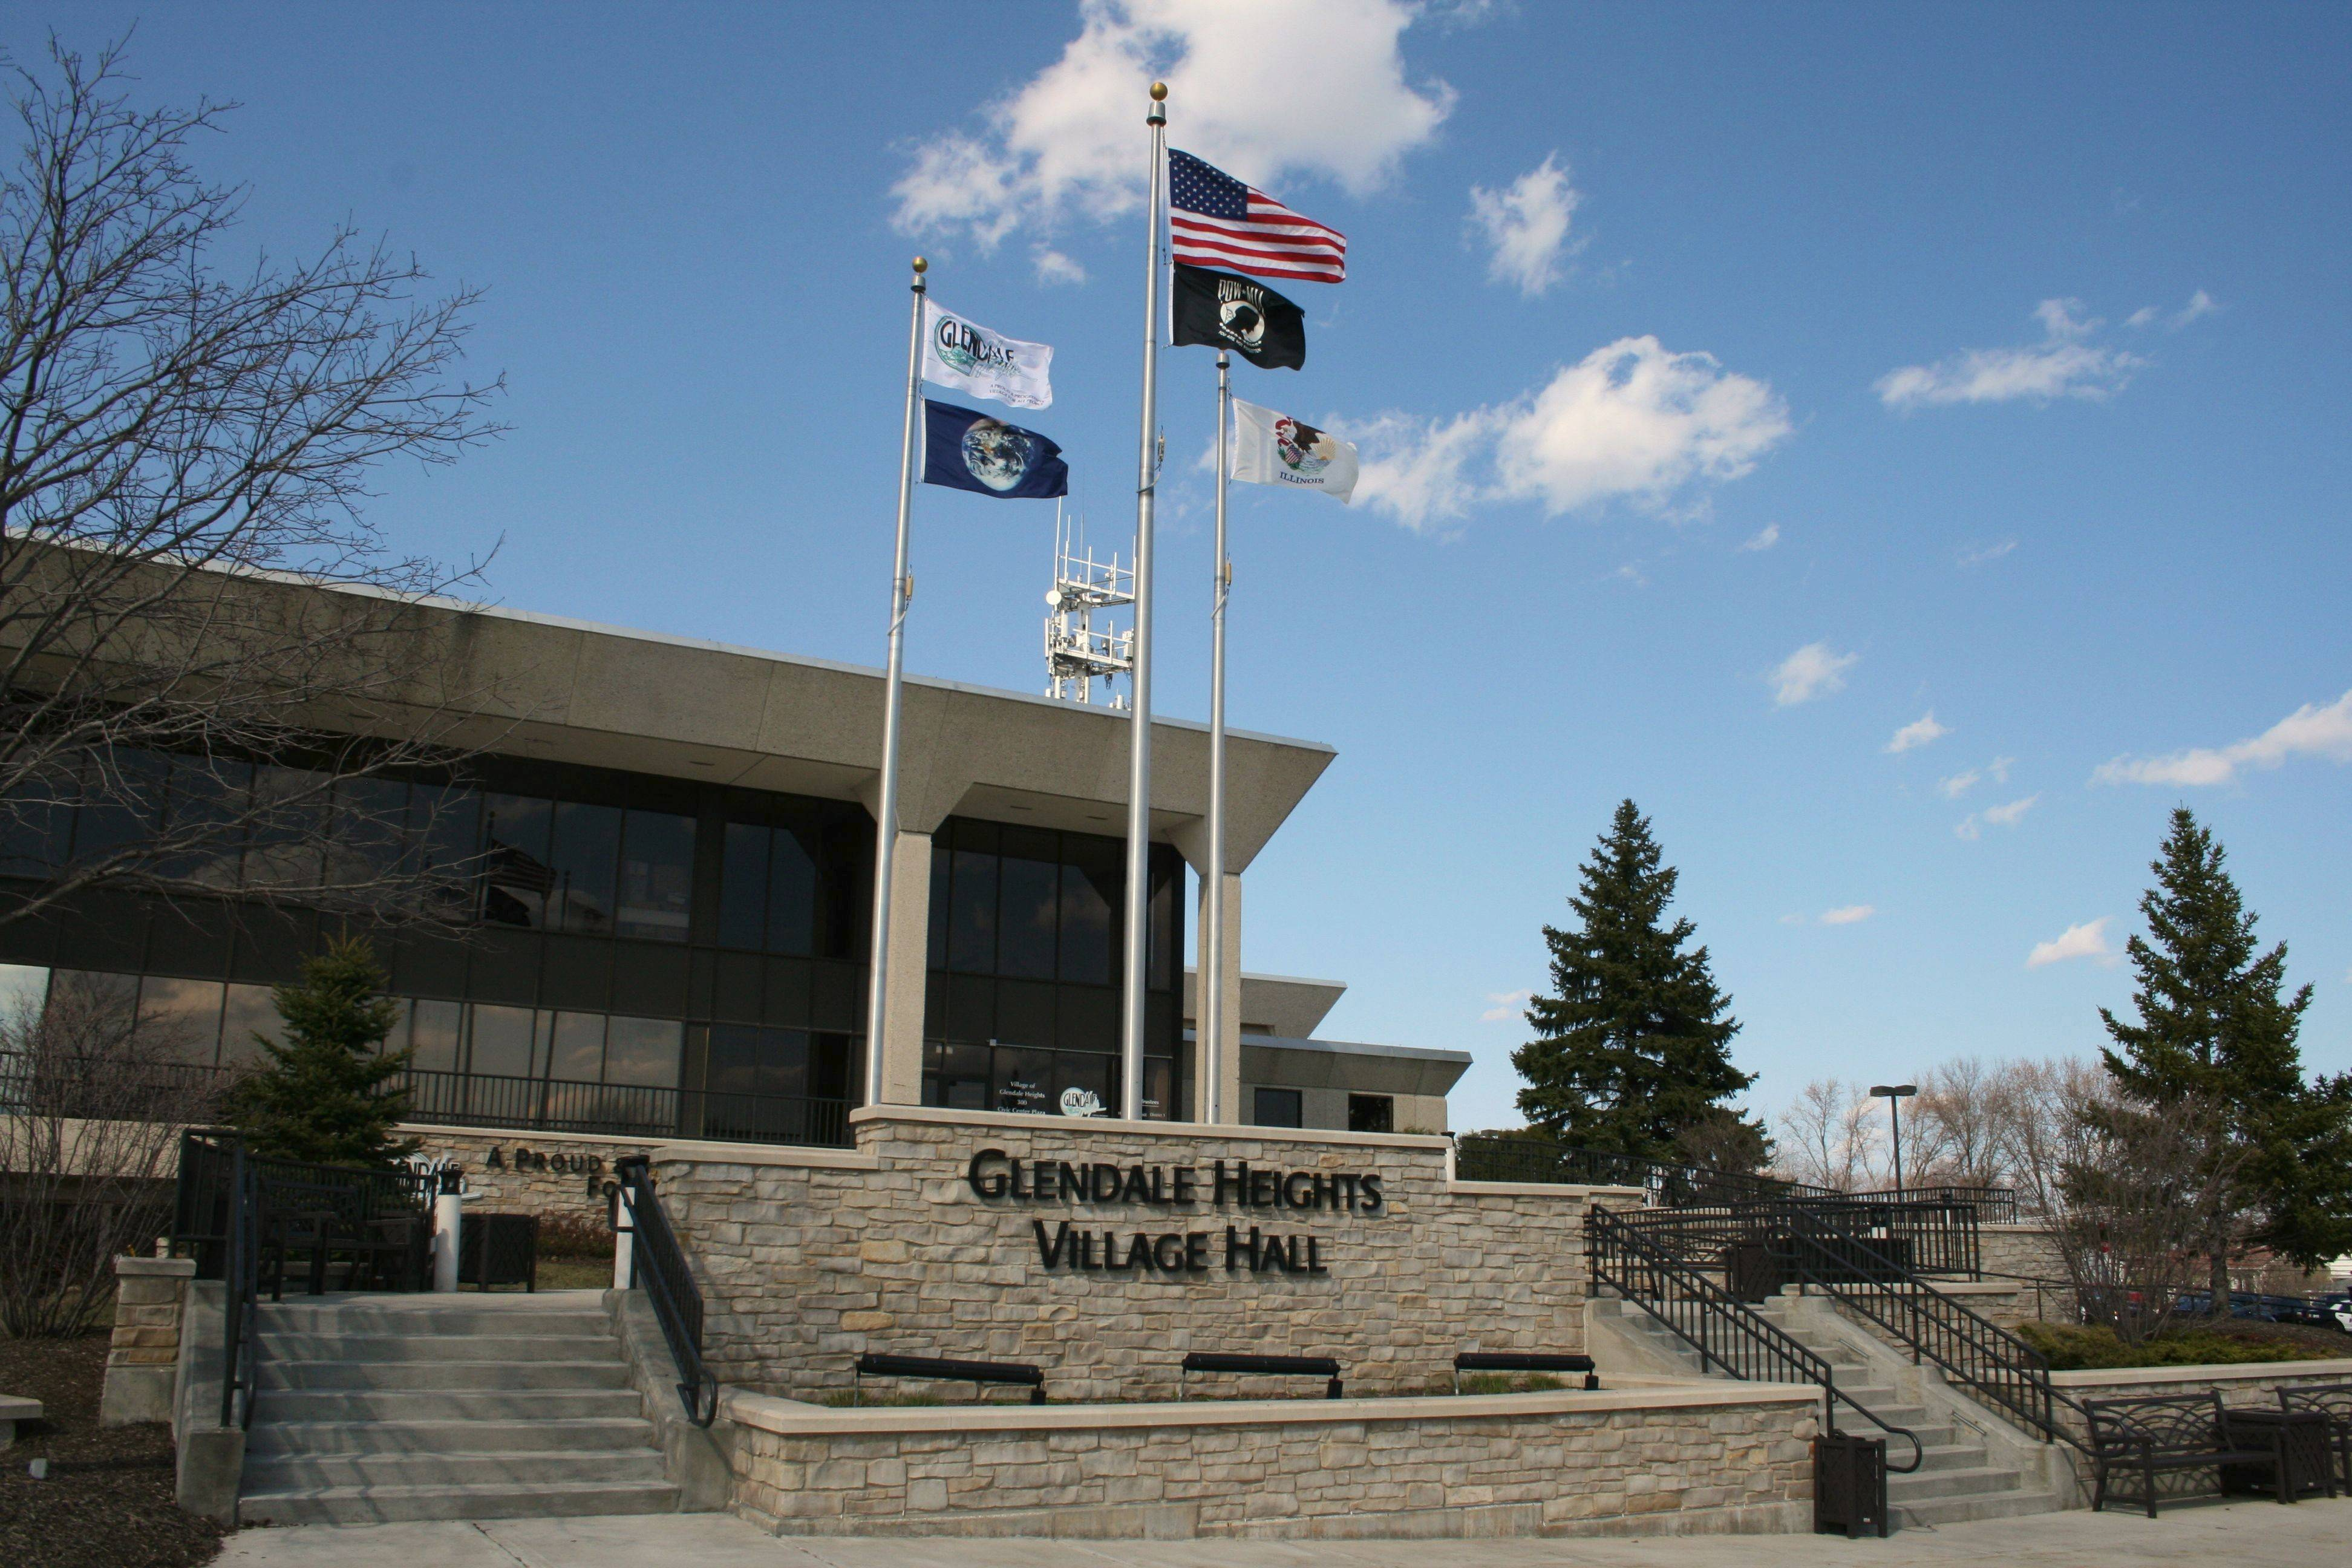 Glendale Heights' village hall at 300 Civic Center Plaza.